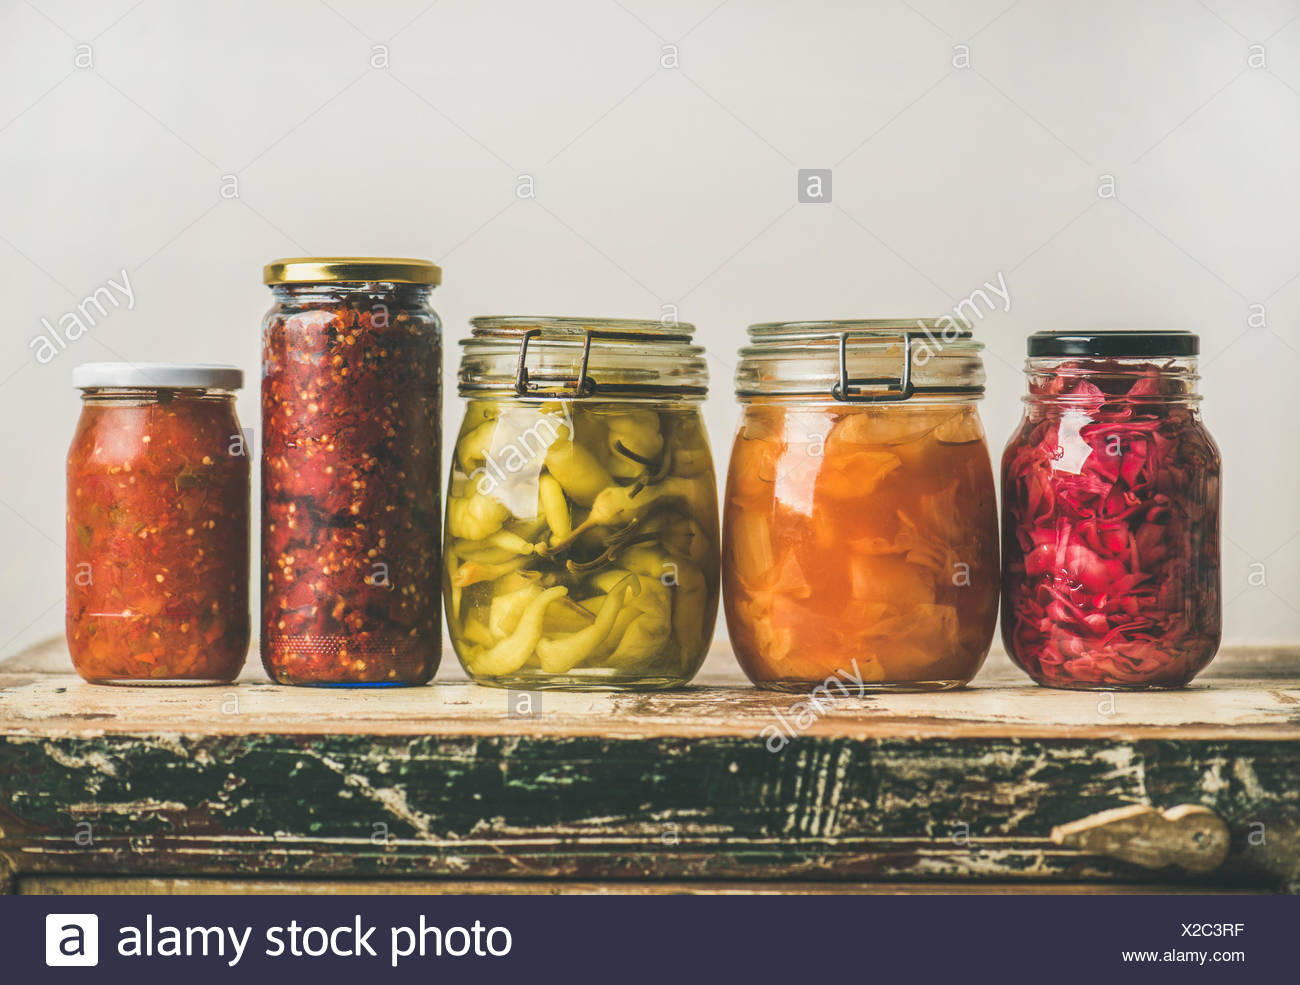 Autumn Seasonal Pickled Or Fermented Colorful Vegetables In Jars Placed In  Row Over Vintage Kitchen Drawer, White Wall Background, Copy Space. Fall Ho